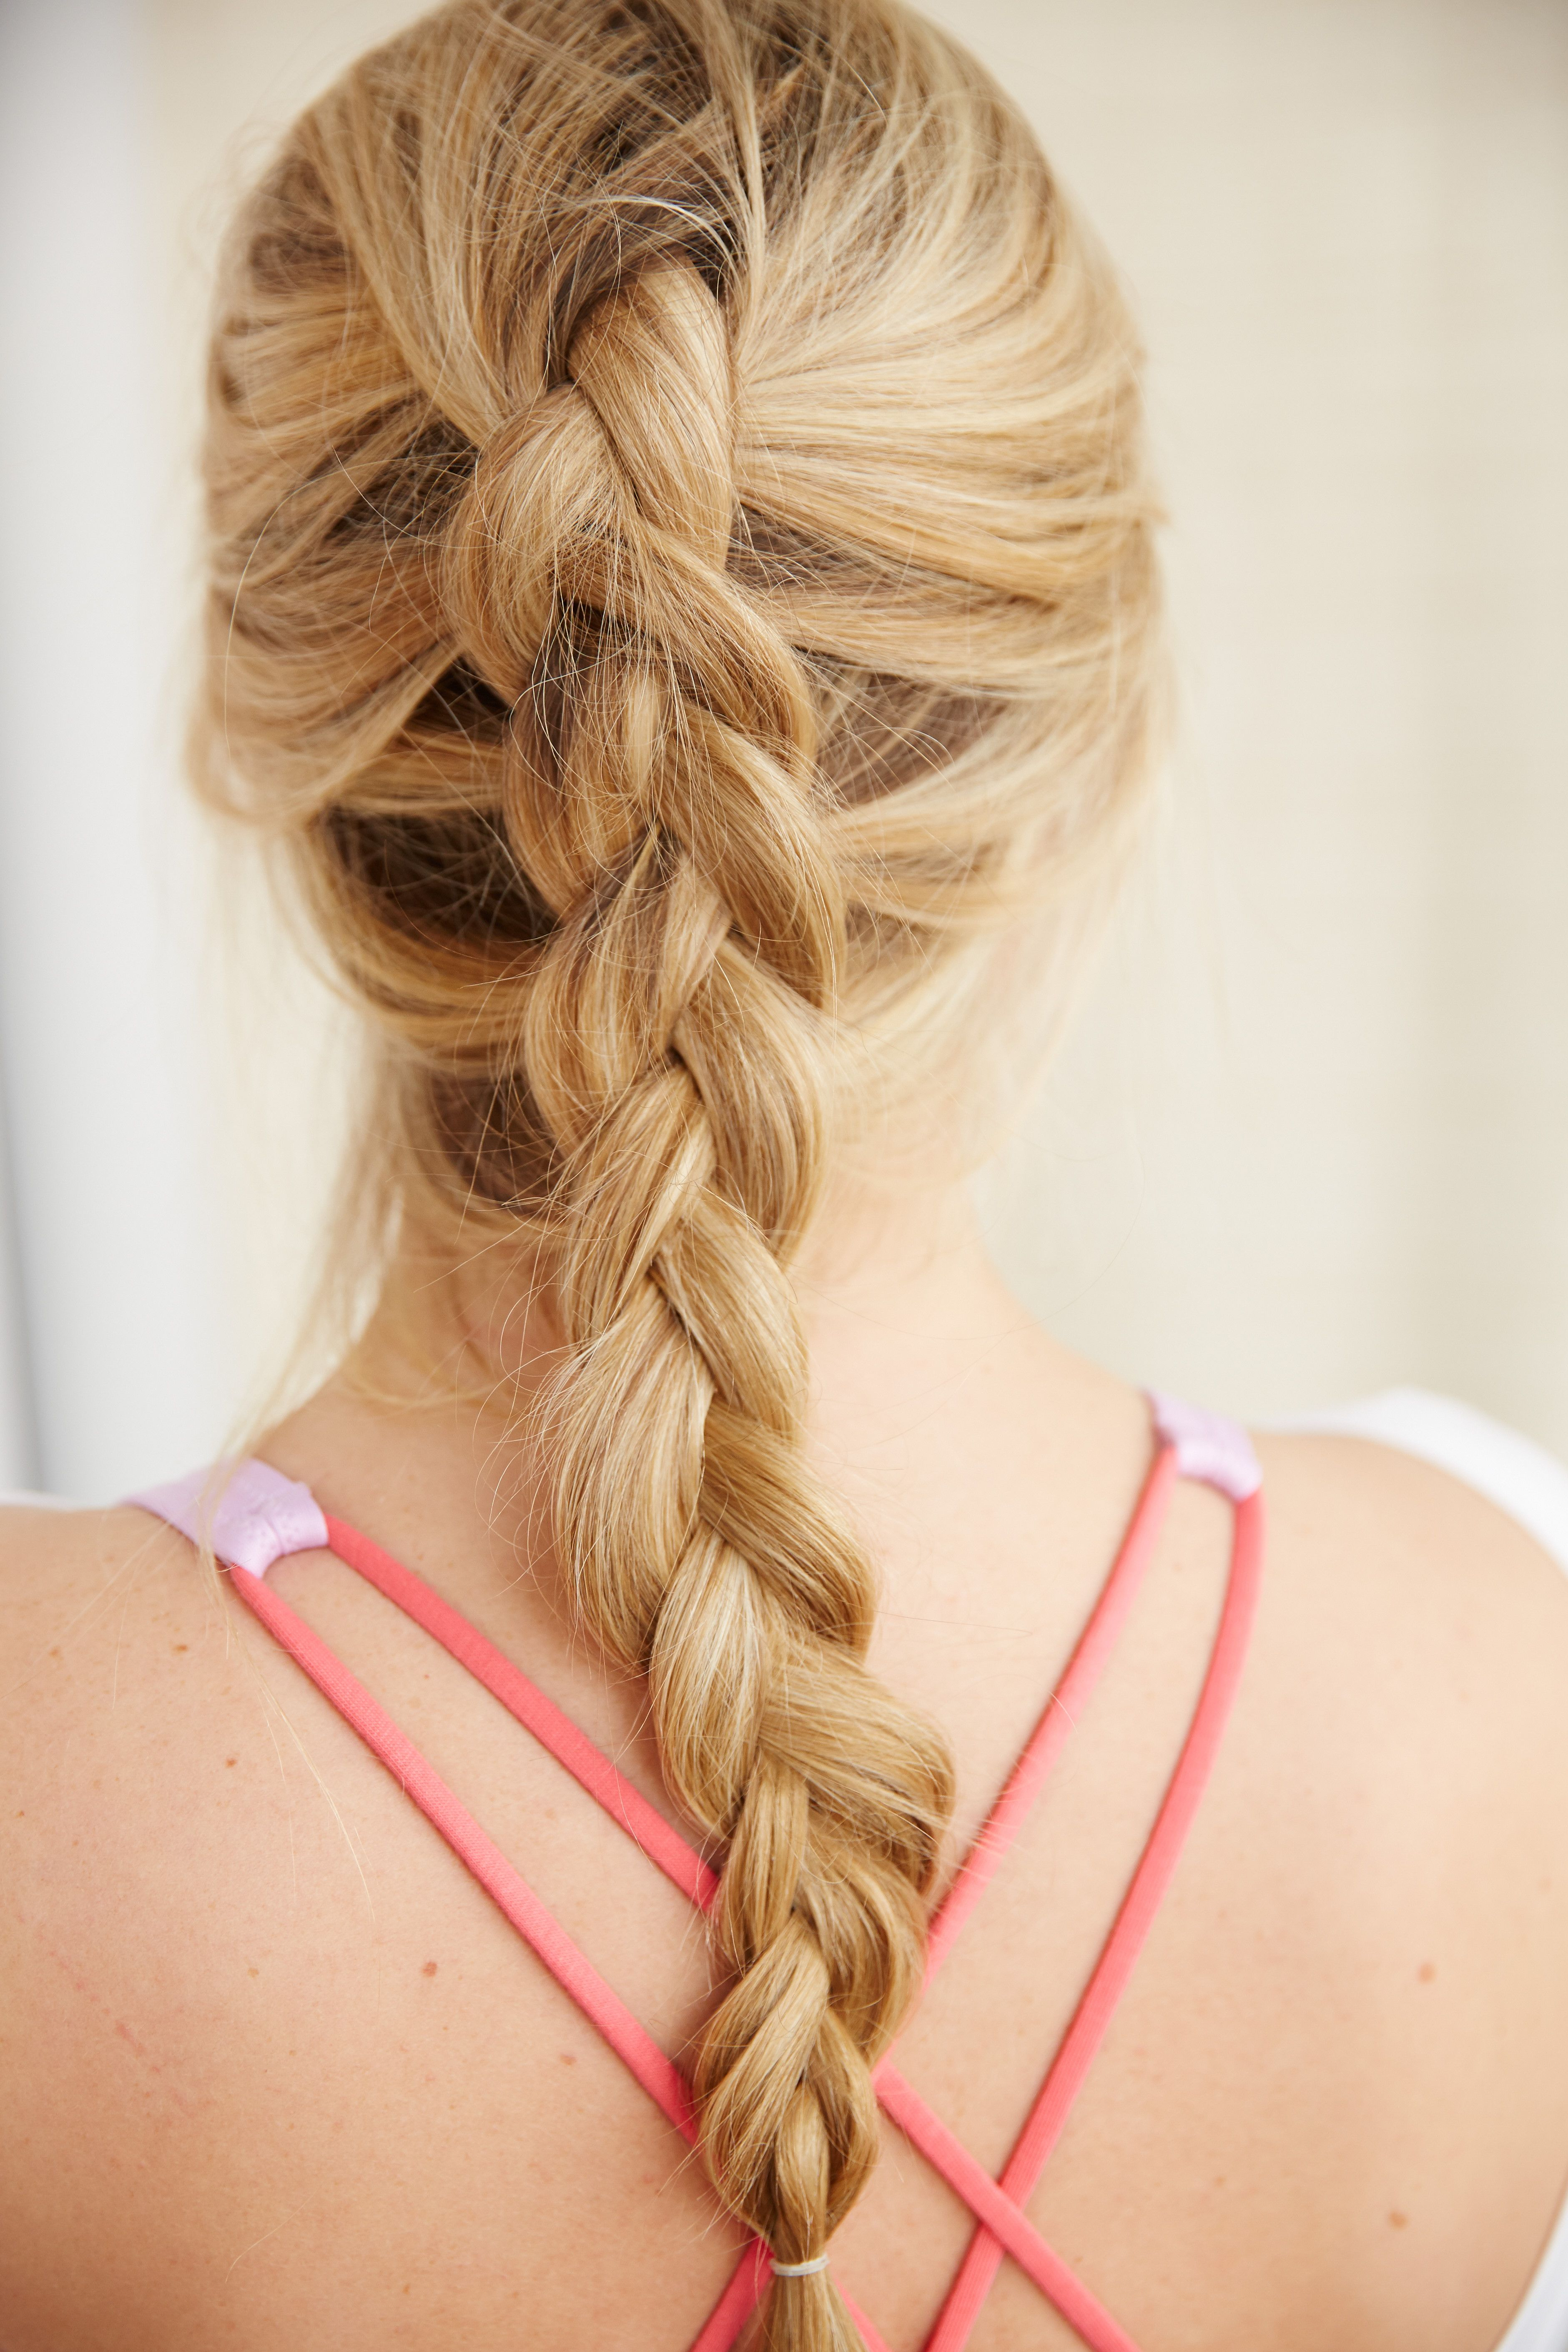 How To Make A Reverse French Braid   Hair  3   Pinterest   Reverse     How To Make A Reverse French Braid